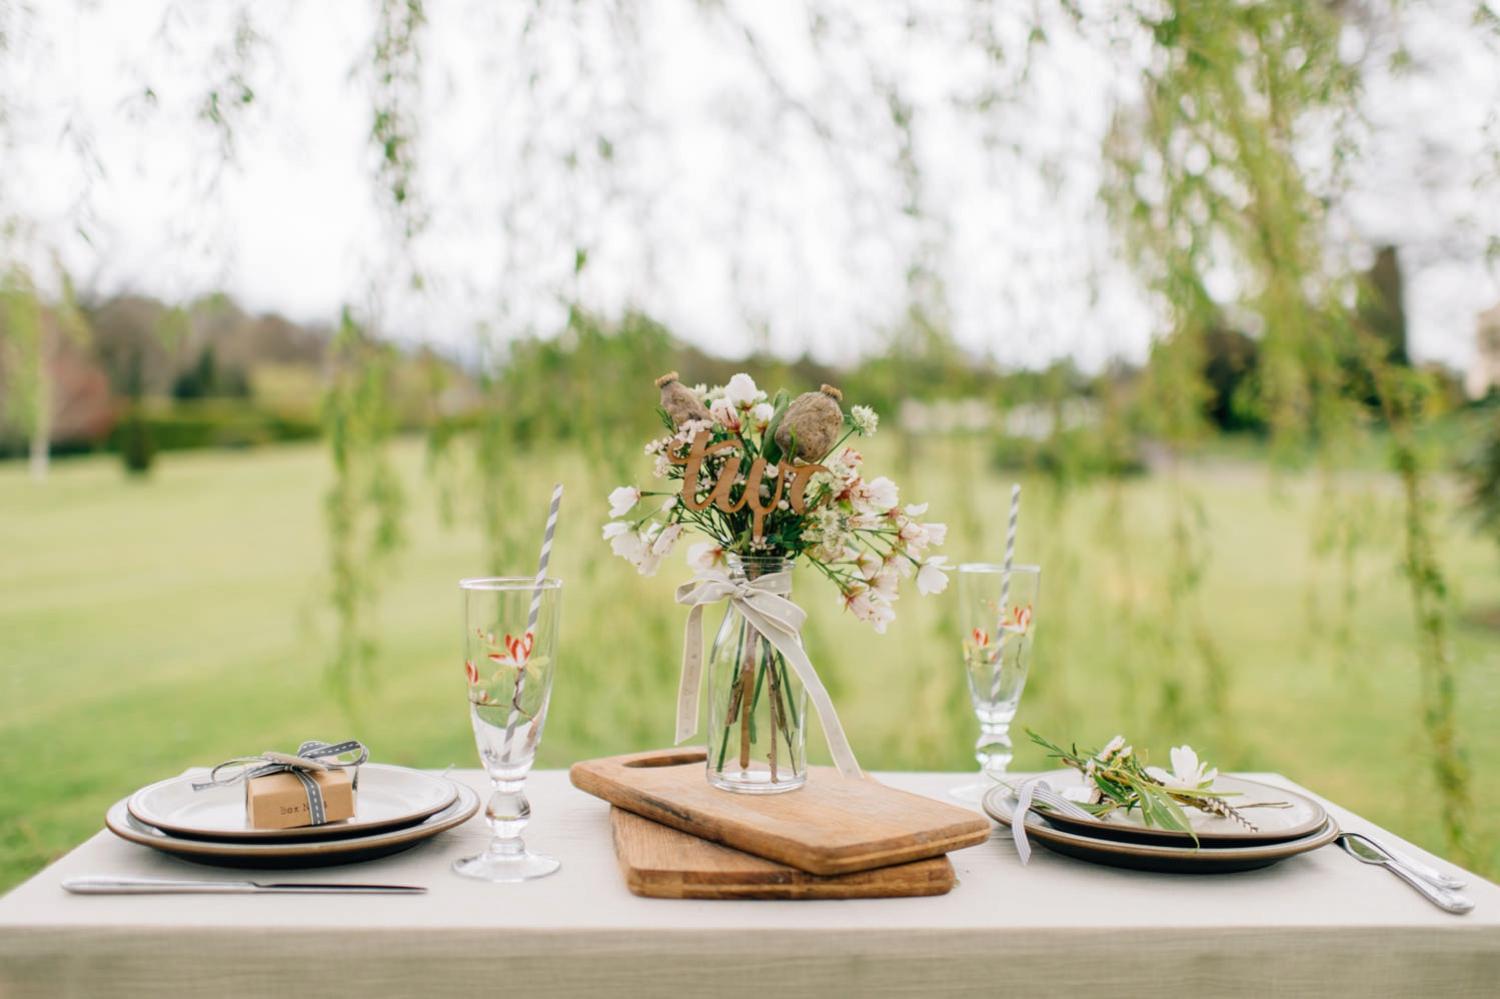 Table for Two Wedding Inspiration Northern Ireland 003.JPG